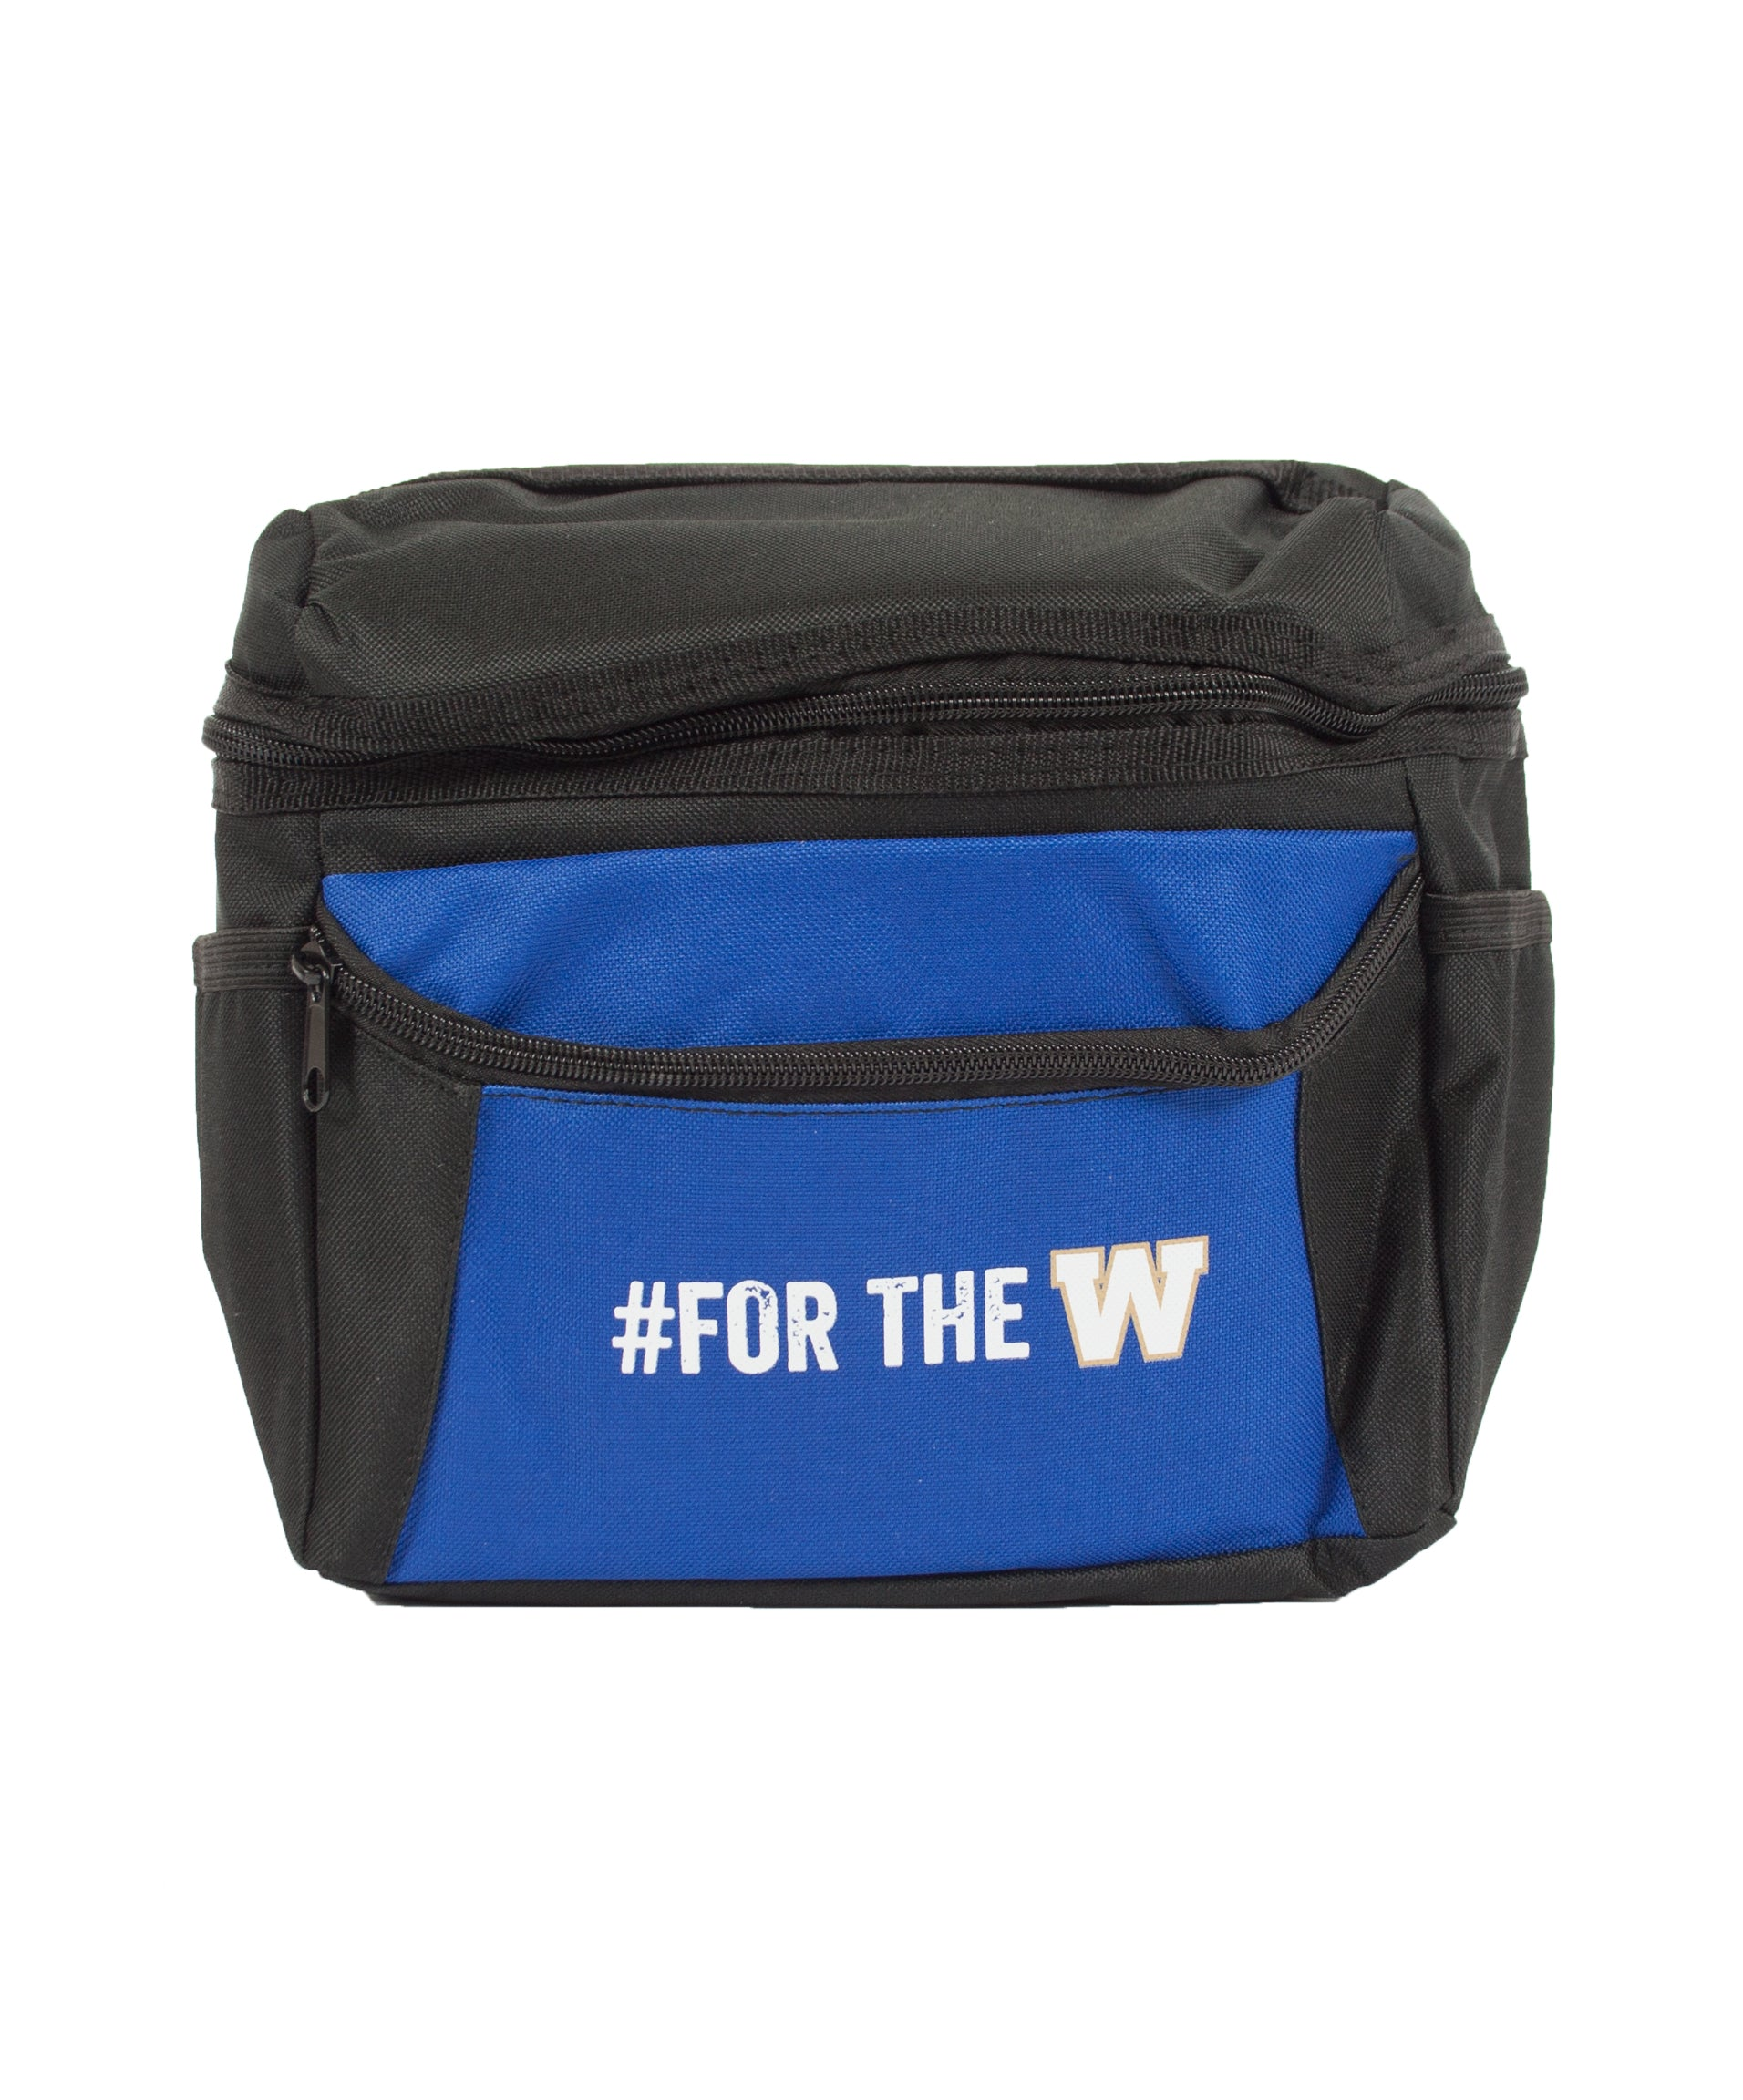 #fortheW Lunch Bag